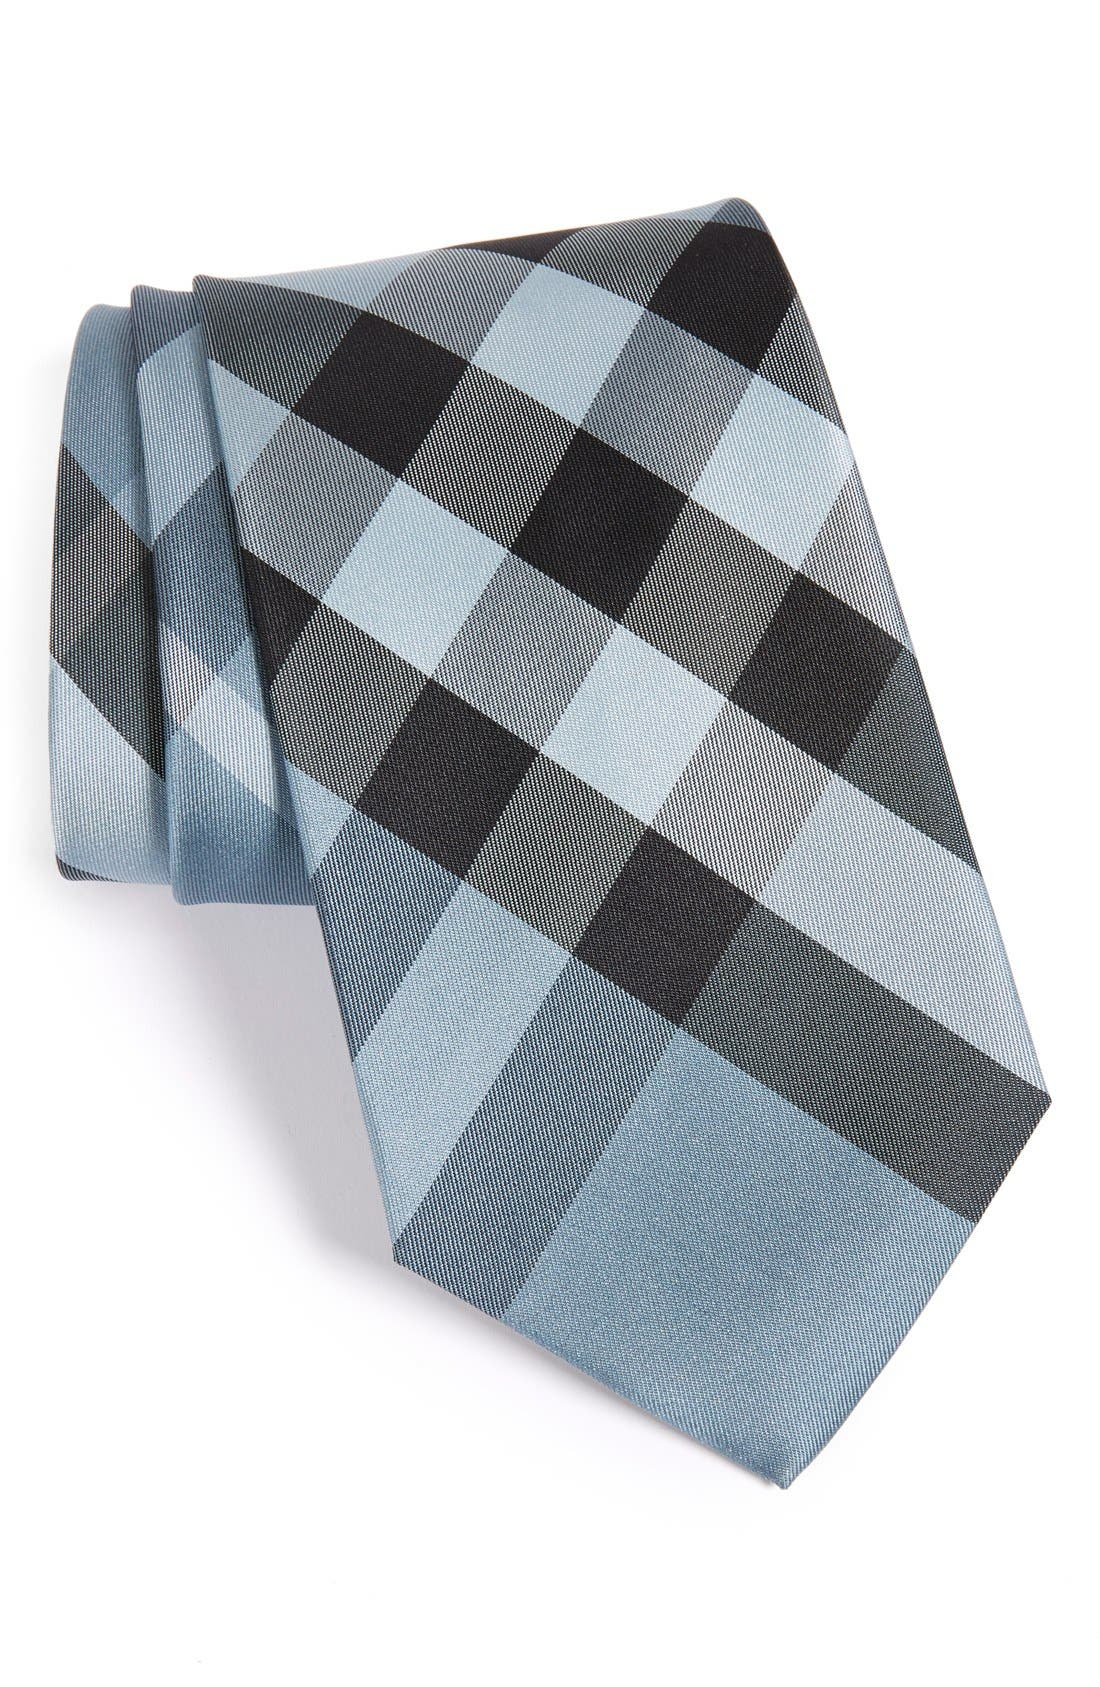 Burberry London 'Clinton' Check Silk Tie